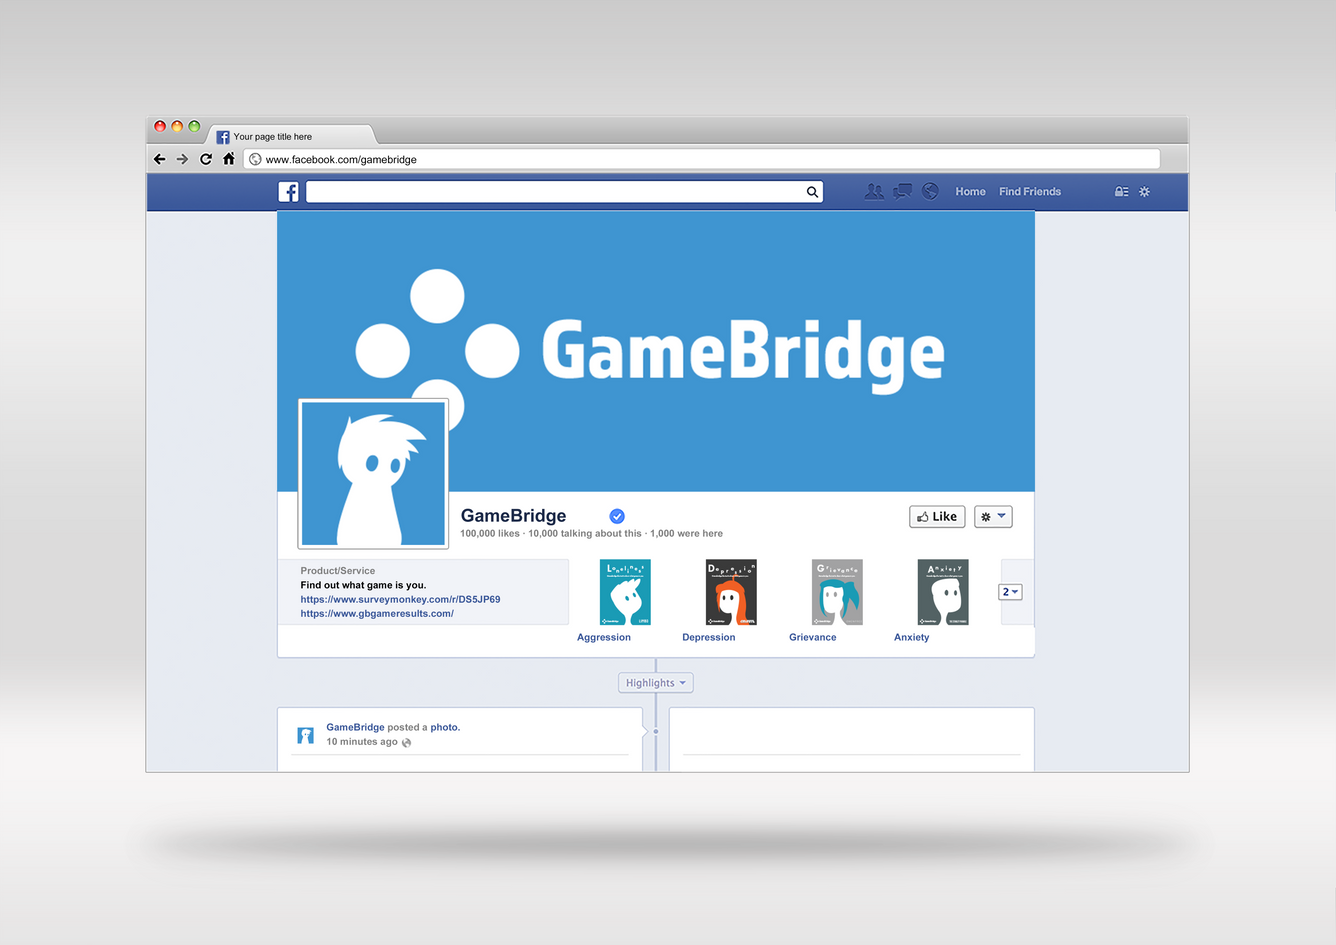 GameBridge Facebook Page